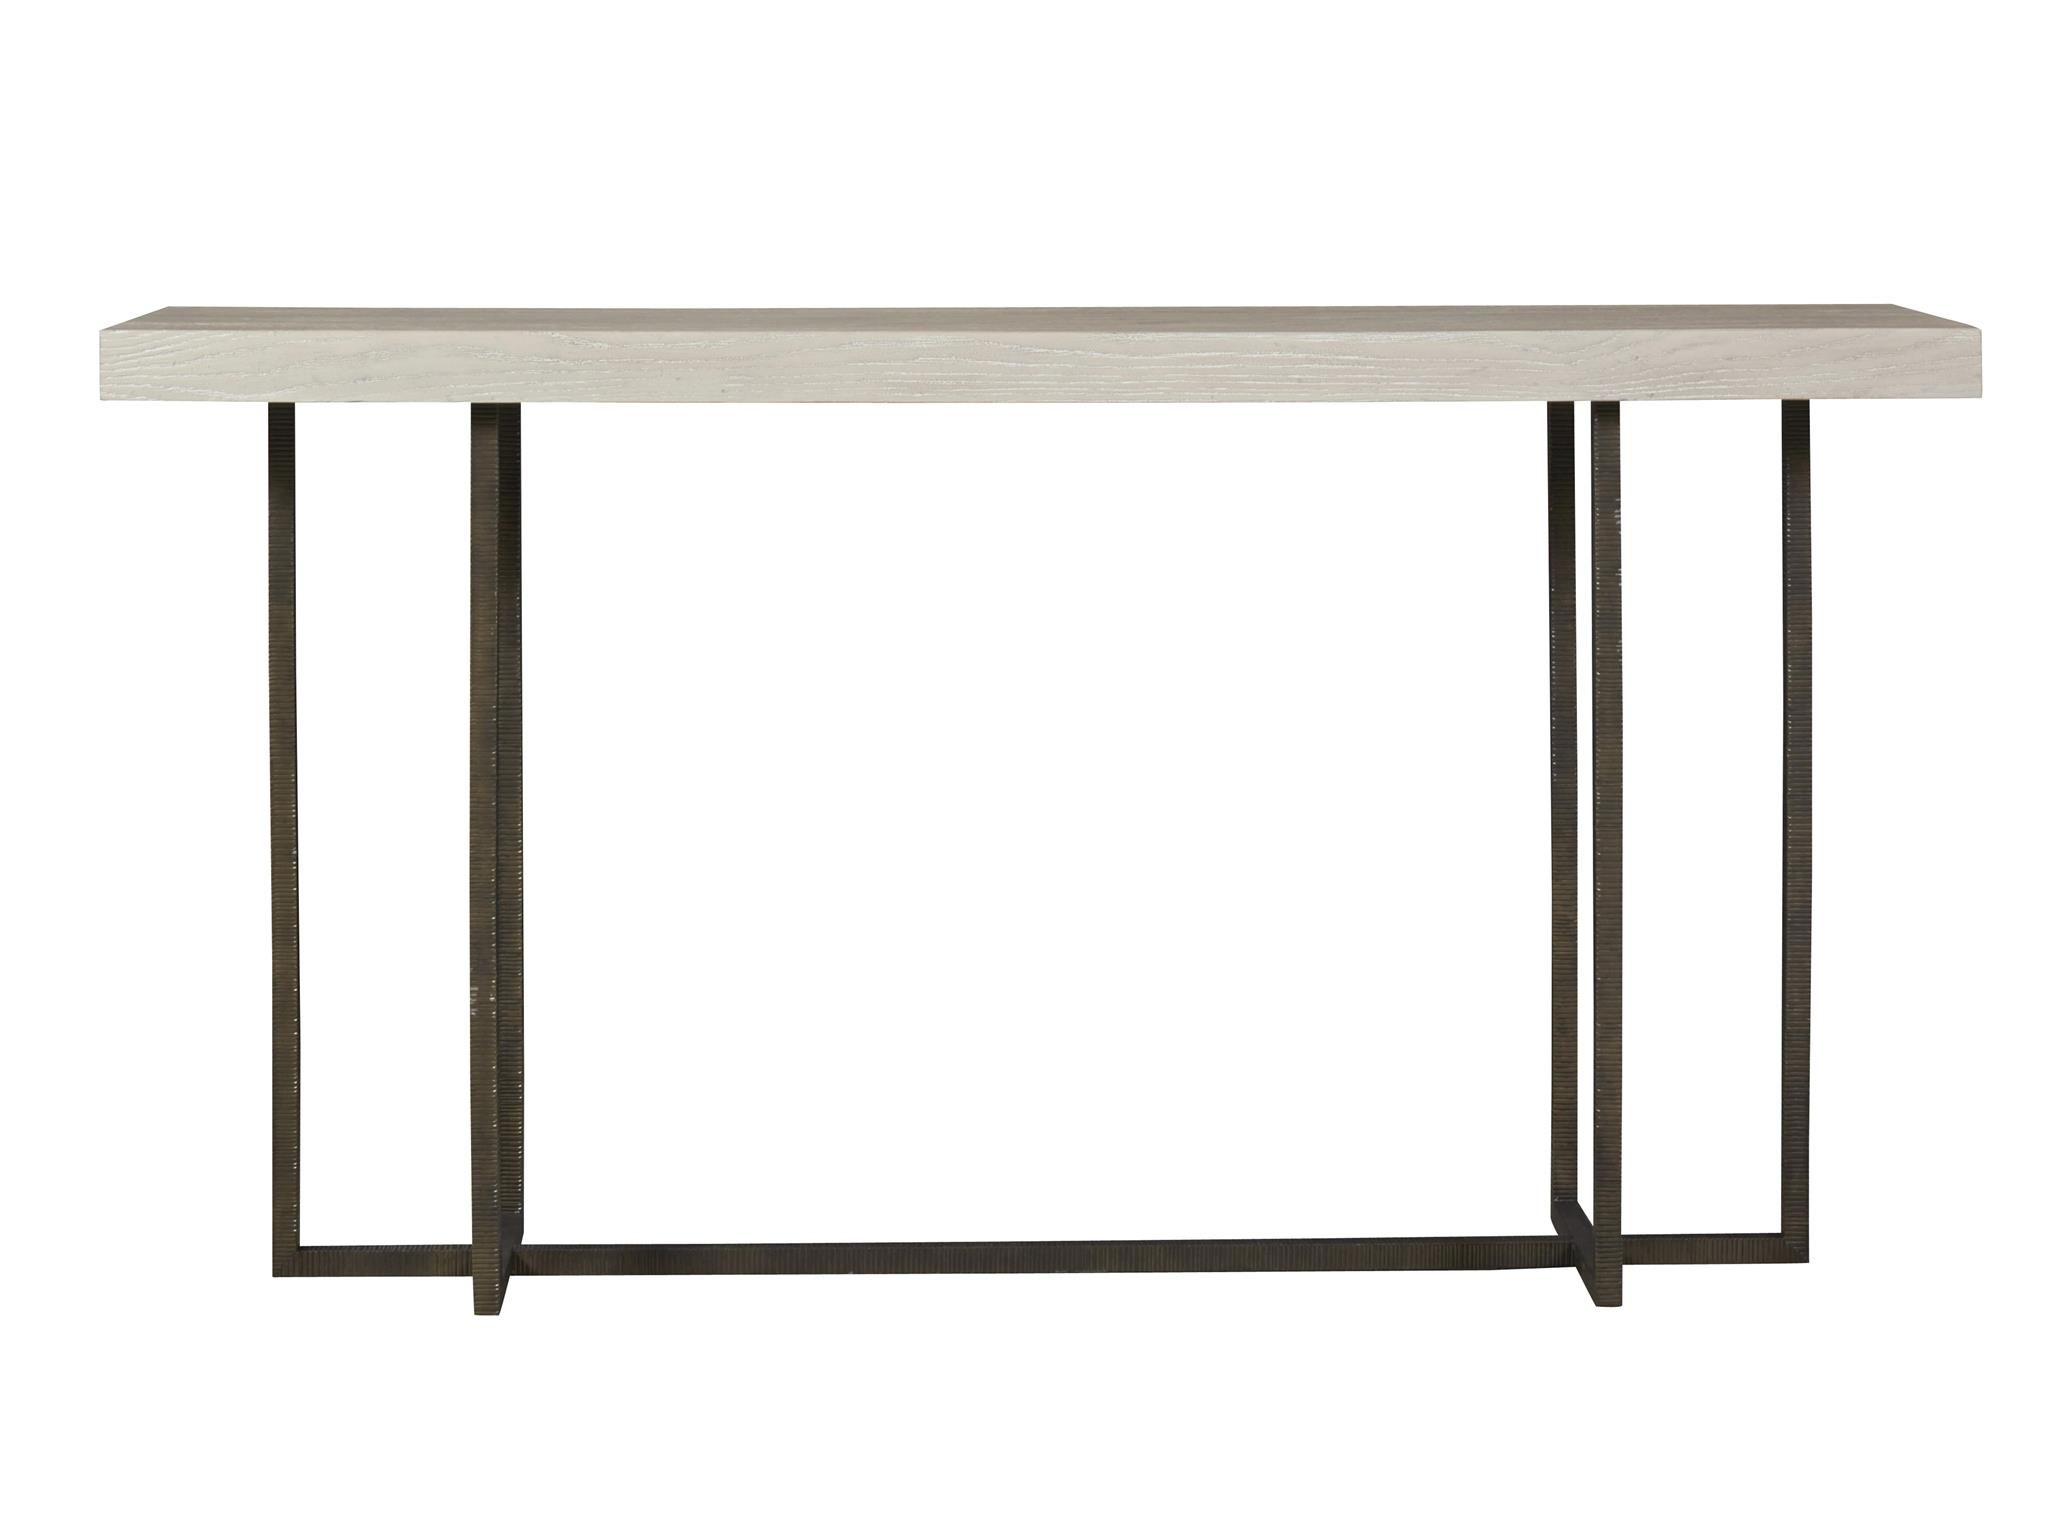 universal modern wilder console table hawthorne heights raised glass top accent bronze grey oak wood metal sofa zin home high corner nest furniture small for bedroom round coffee